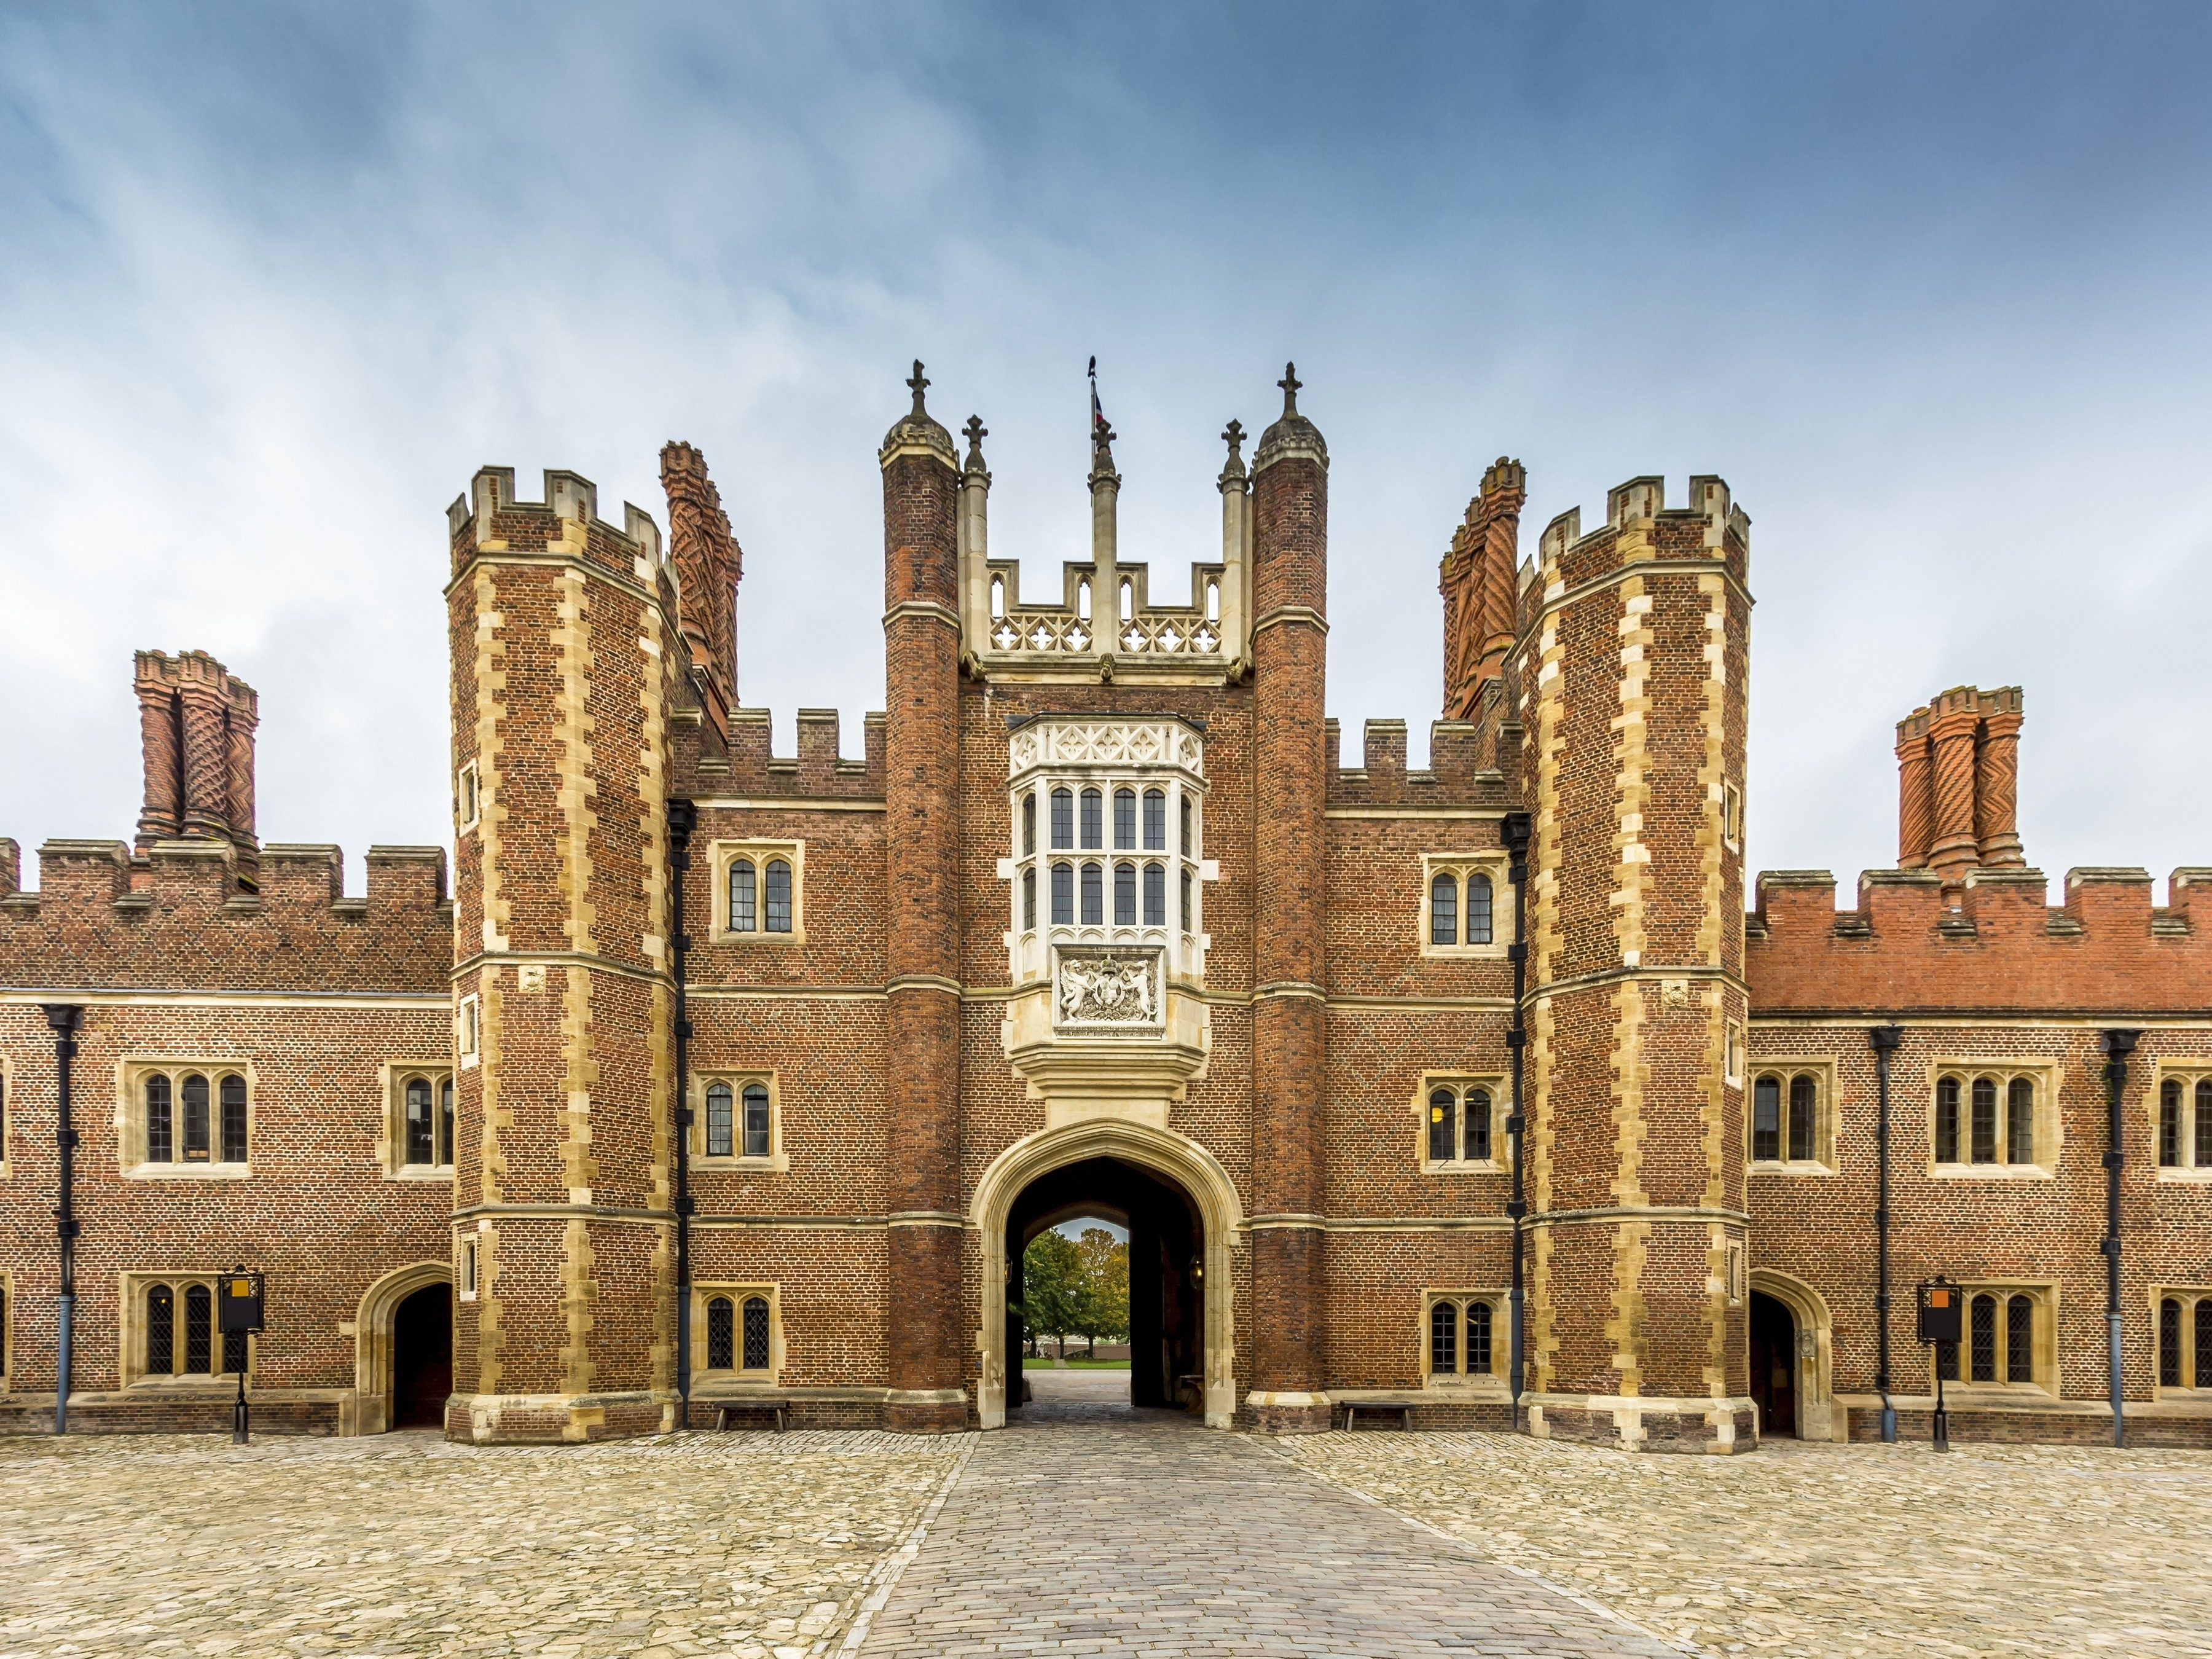 London attractions: Hampton Court Palace